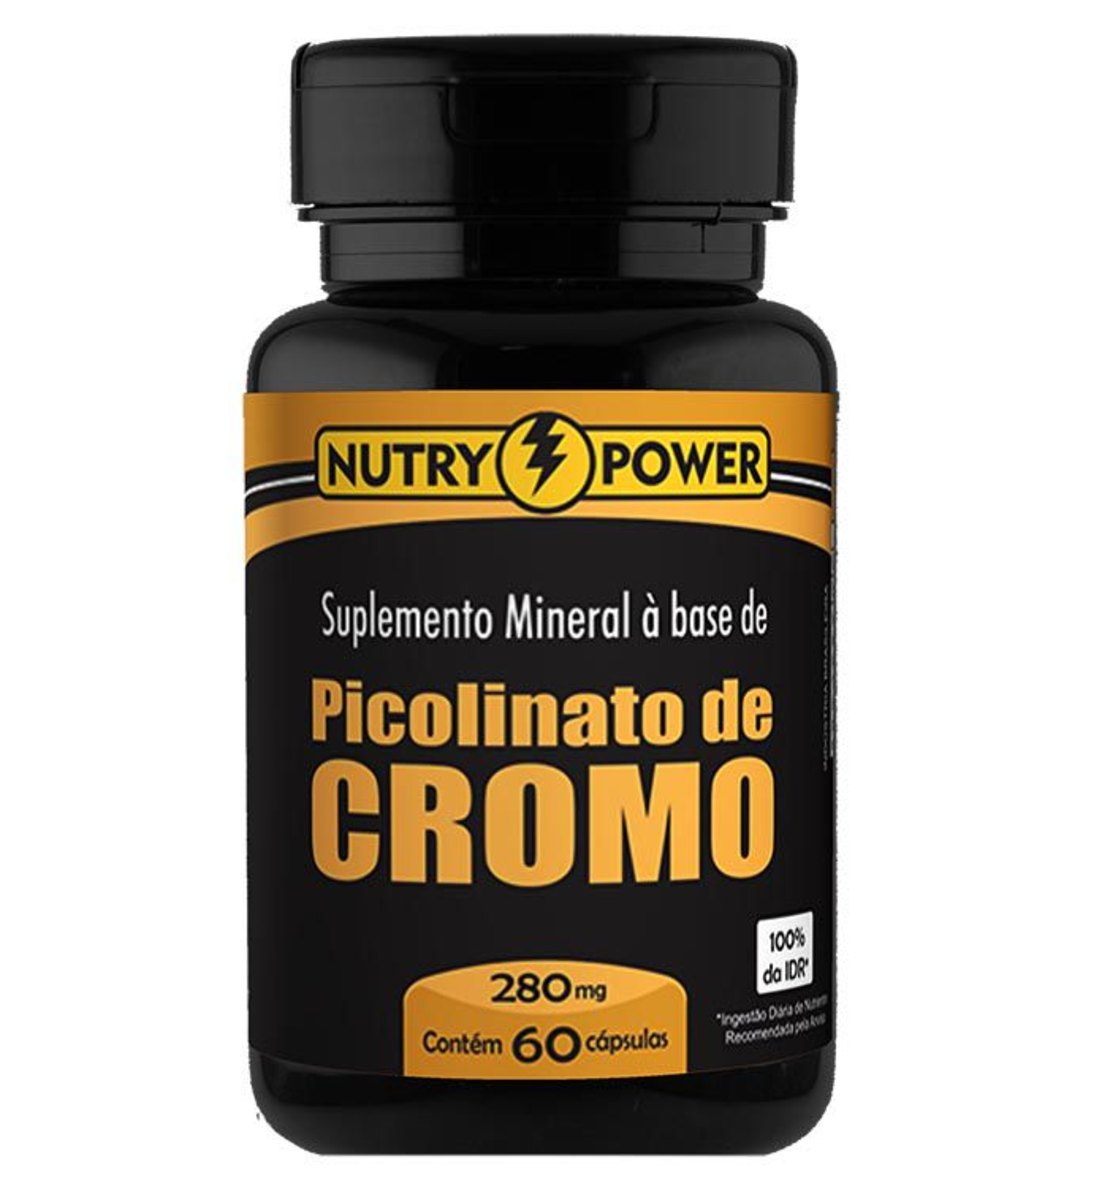 Picolinato de Cromo 60 Caps 280mg Nutry Power